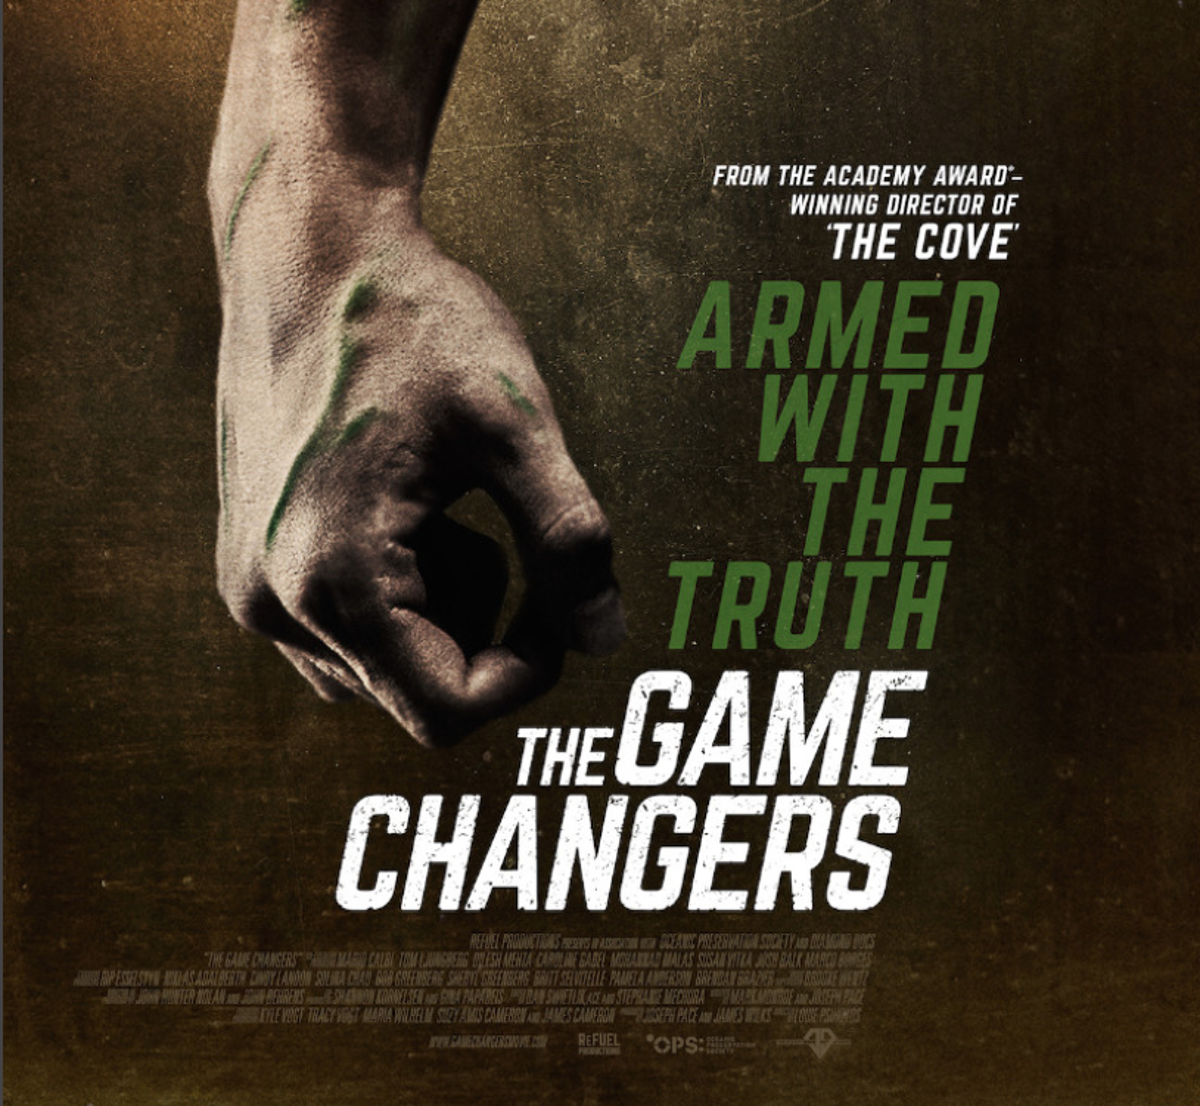 The Game Changers Film Hits Men Where It Hurts Most